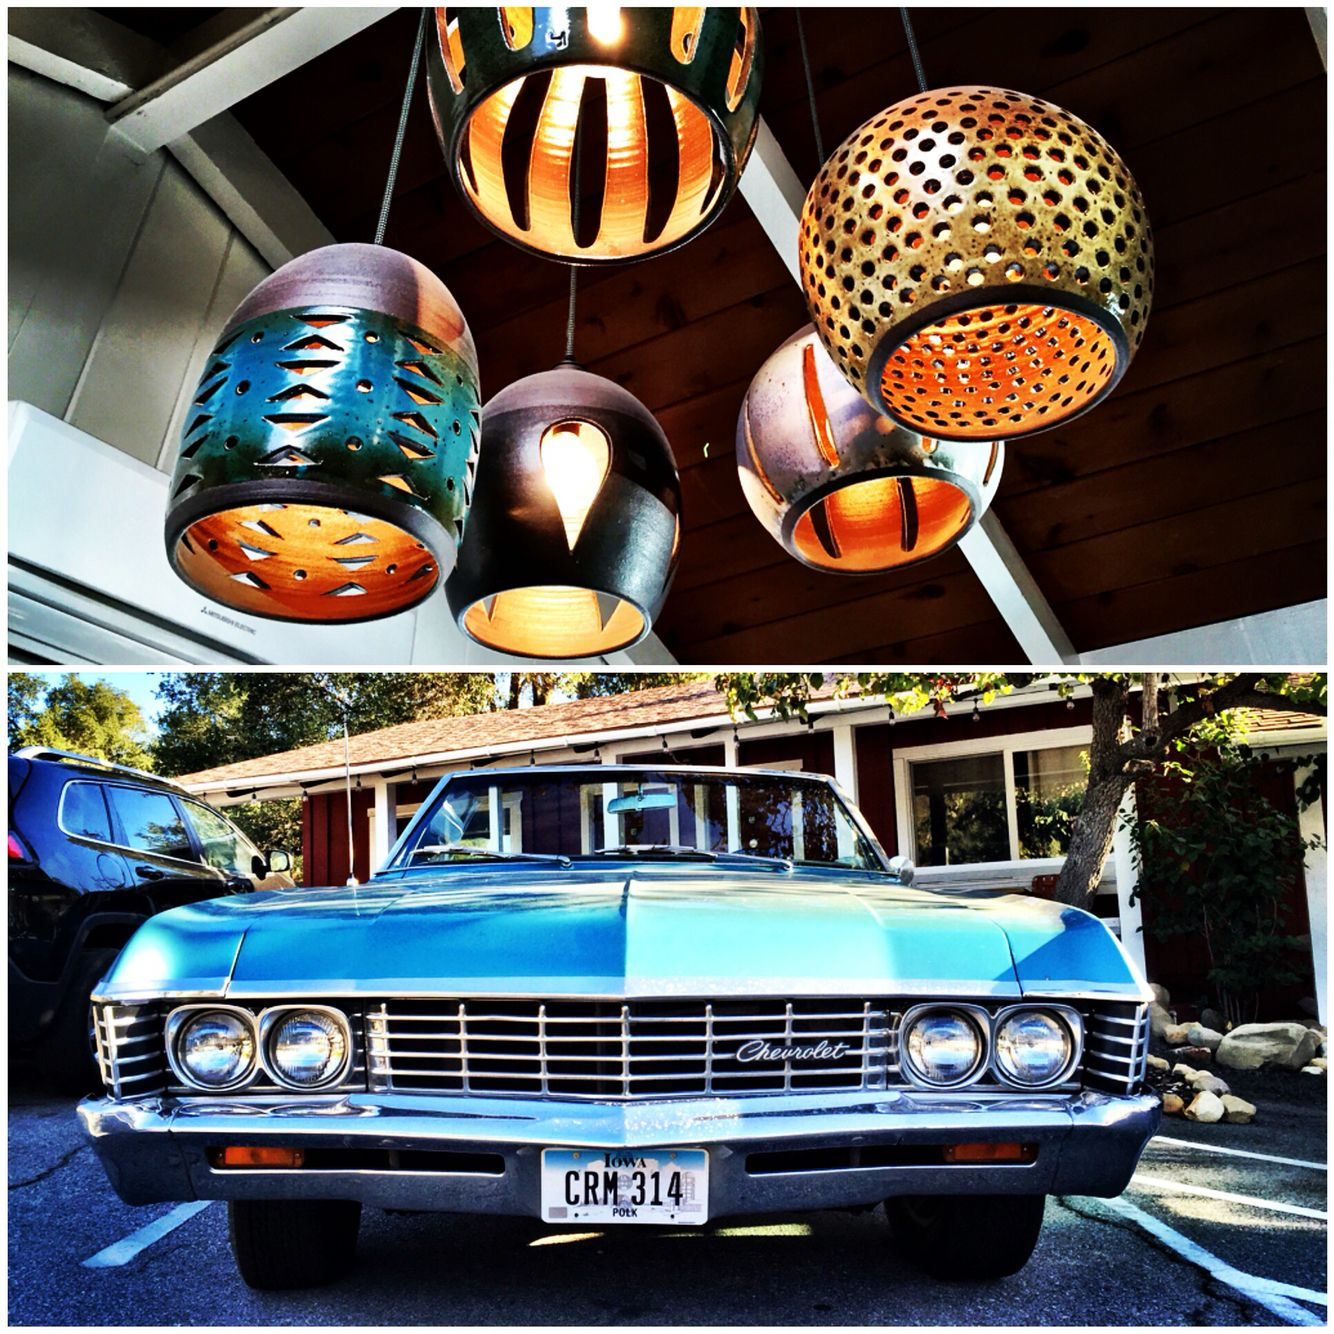 Road trip, Ojai Rancho Inn. Loving Heather Levine ceramics to this vintage Chevy Impala convertible. #RoadTrip pics Susan Wickstrand